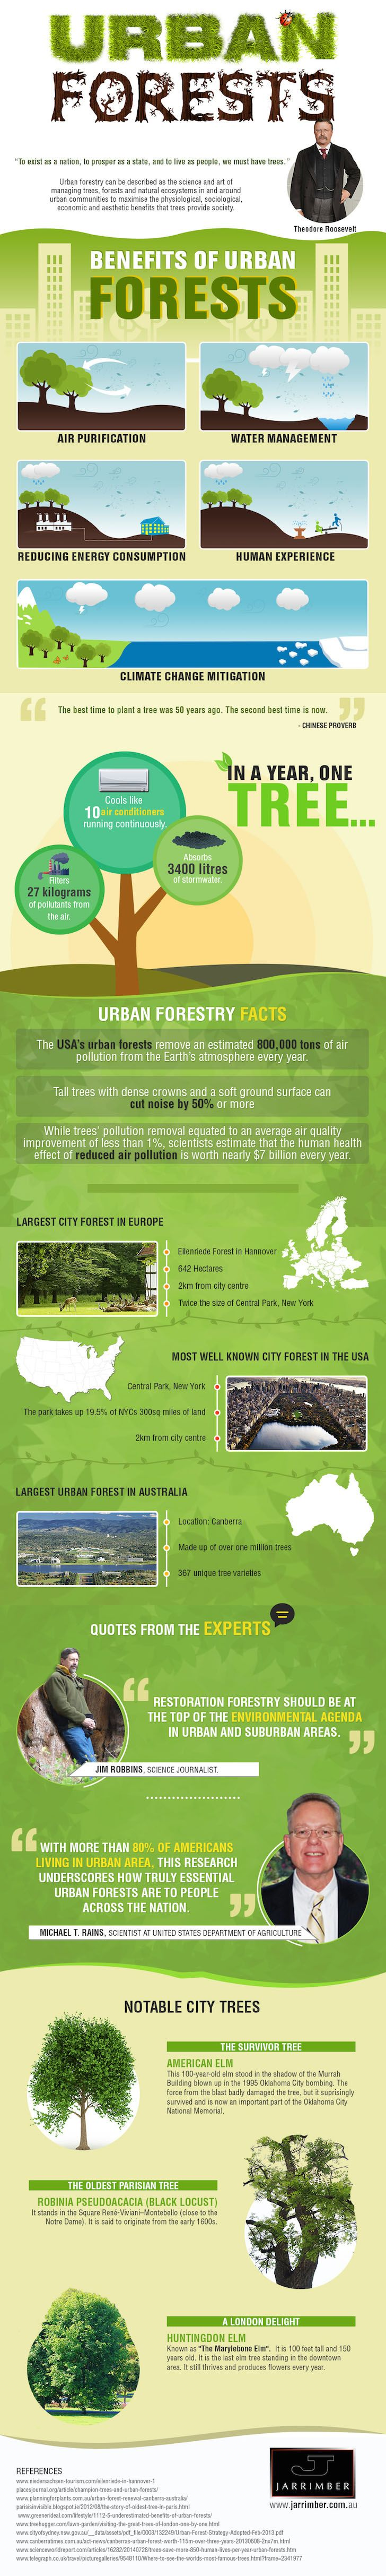 Jarrimber, reader submitted content, urban forestry, urban forests, trees, urban trees, infographic,